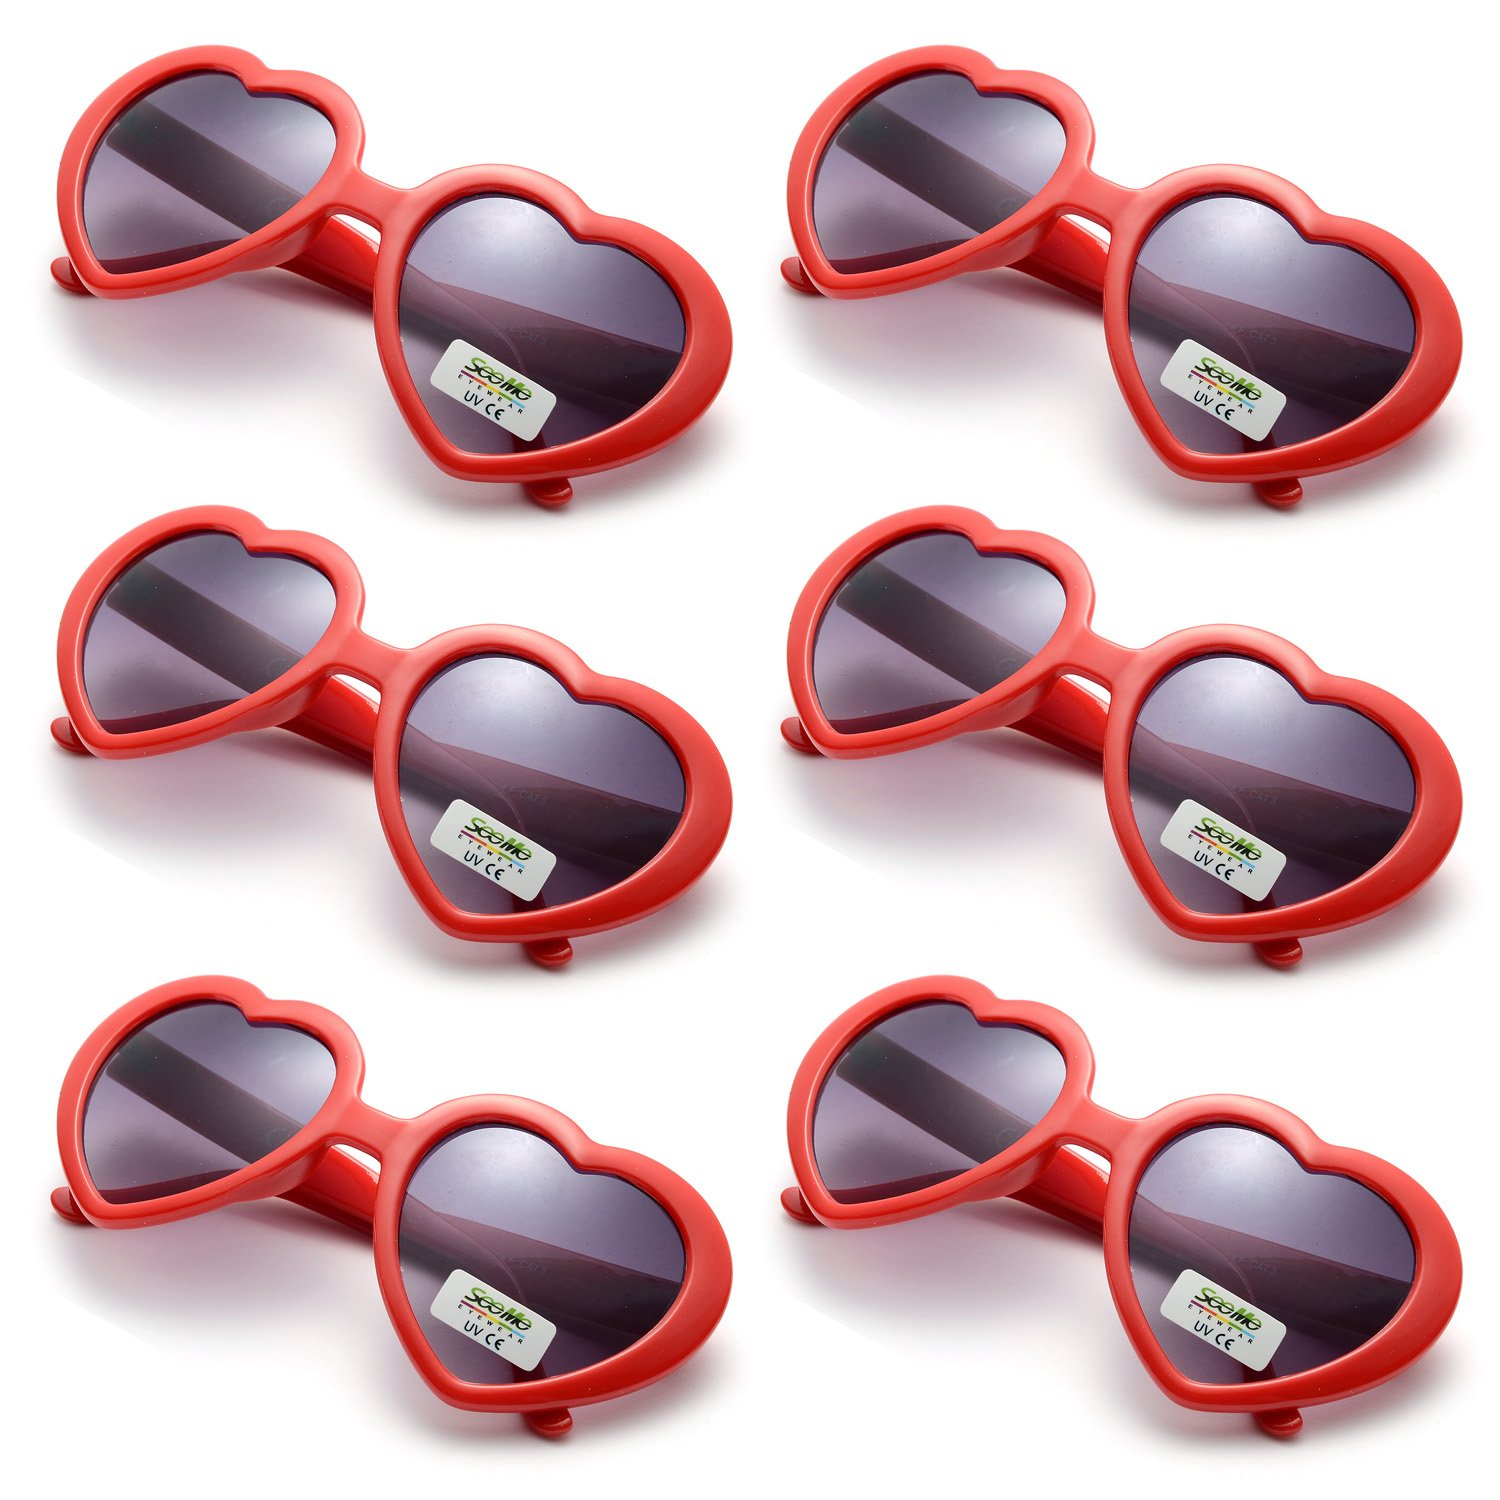 Oaonnea 6 Pack Neon Colors Party Favor Supplies Heart Shape Sunglasses (red)